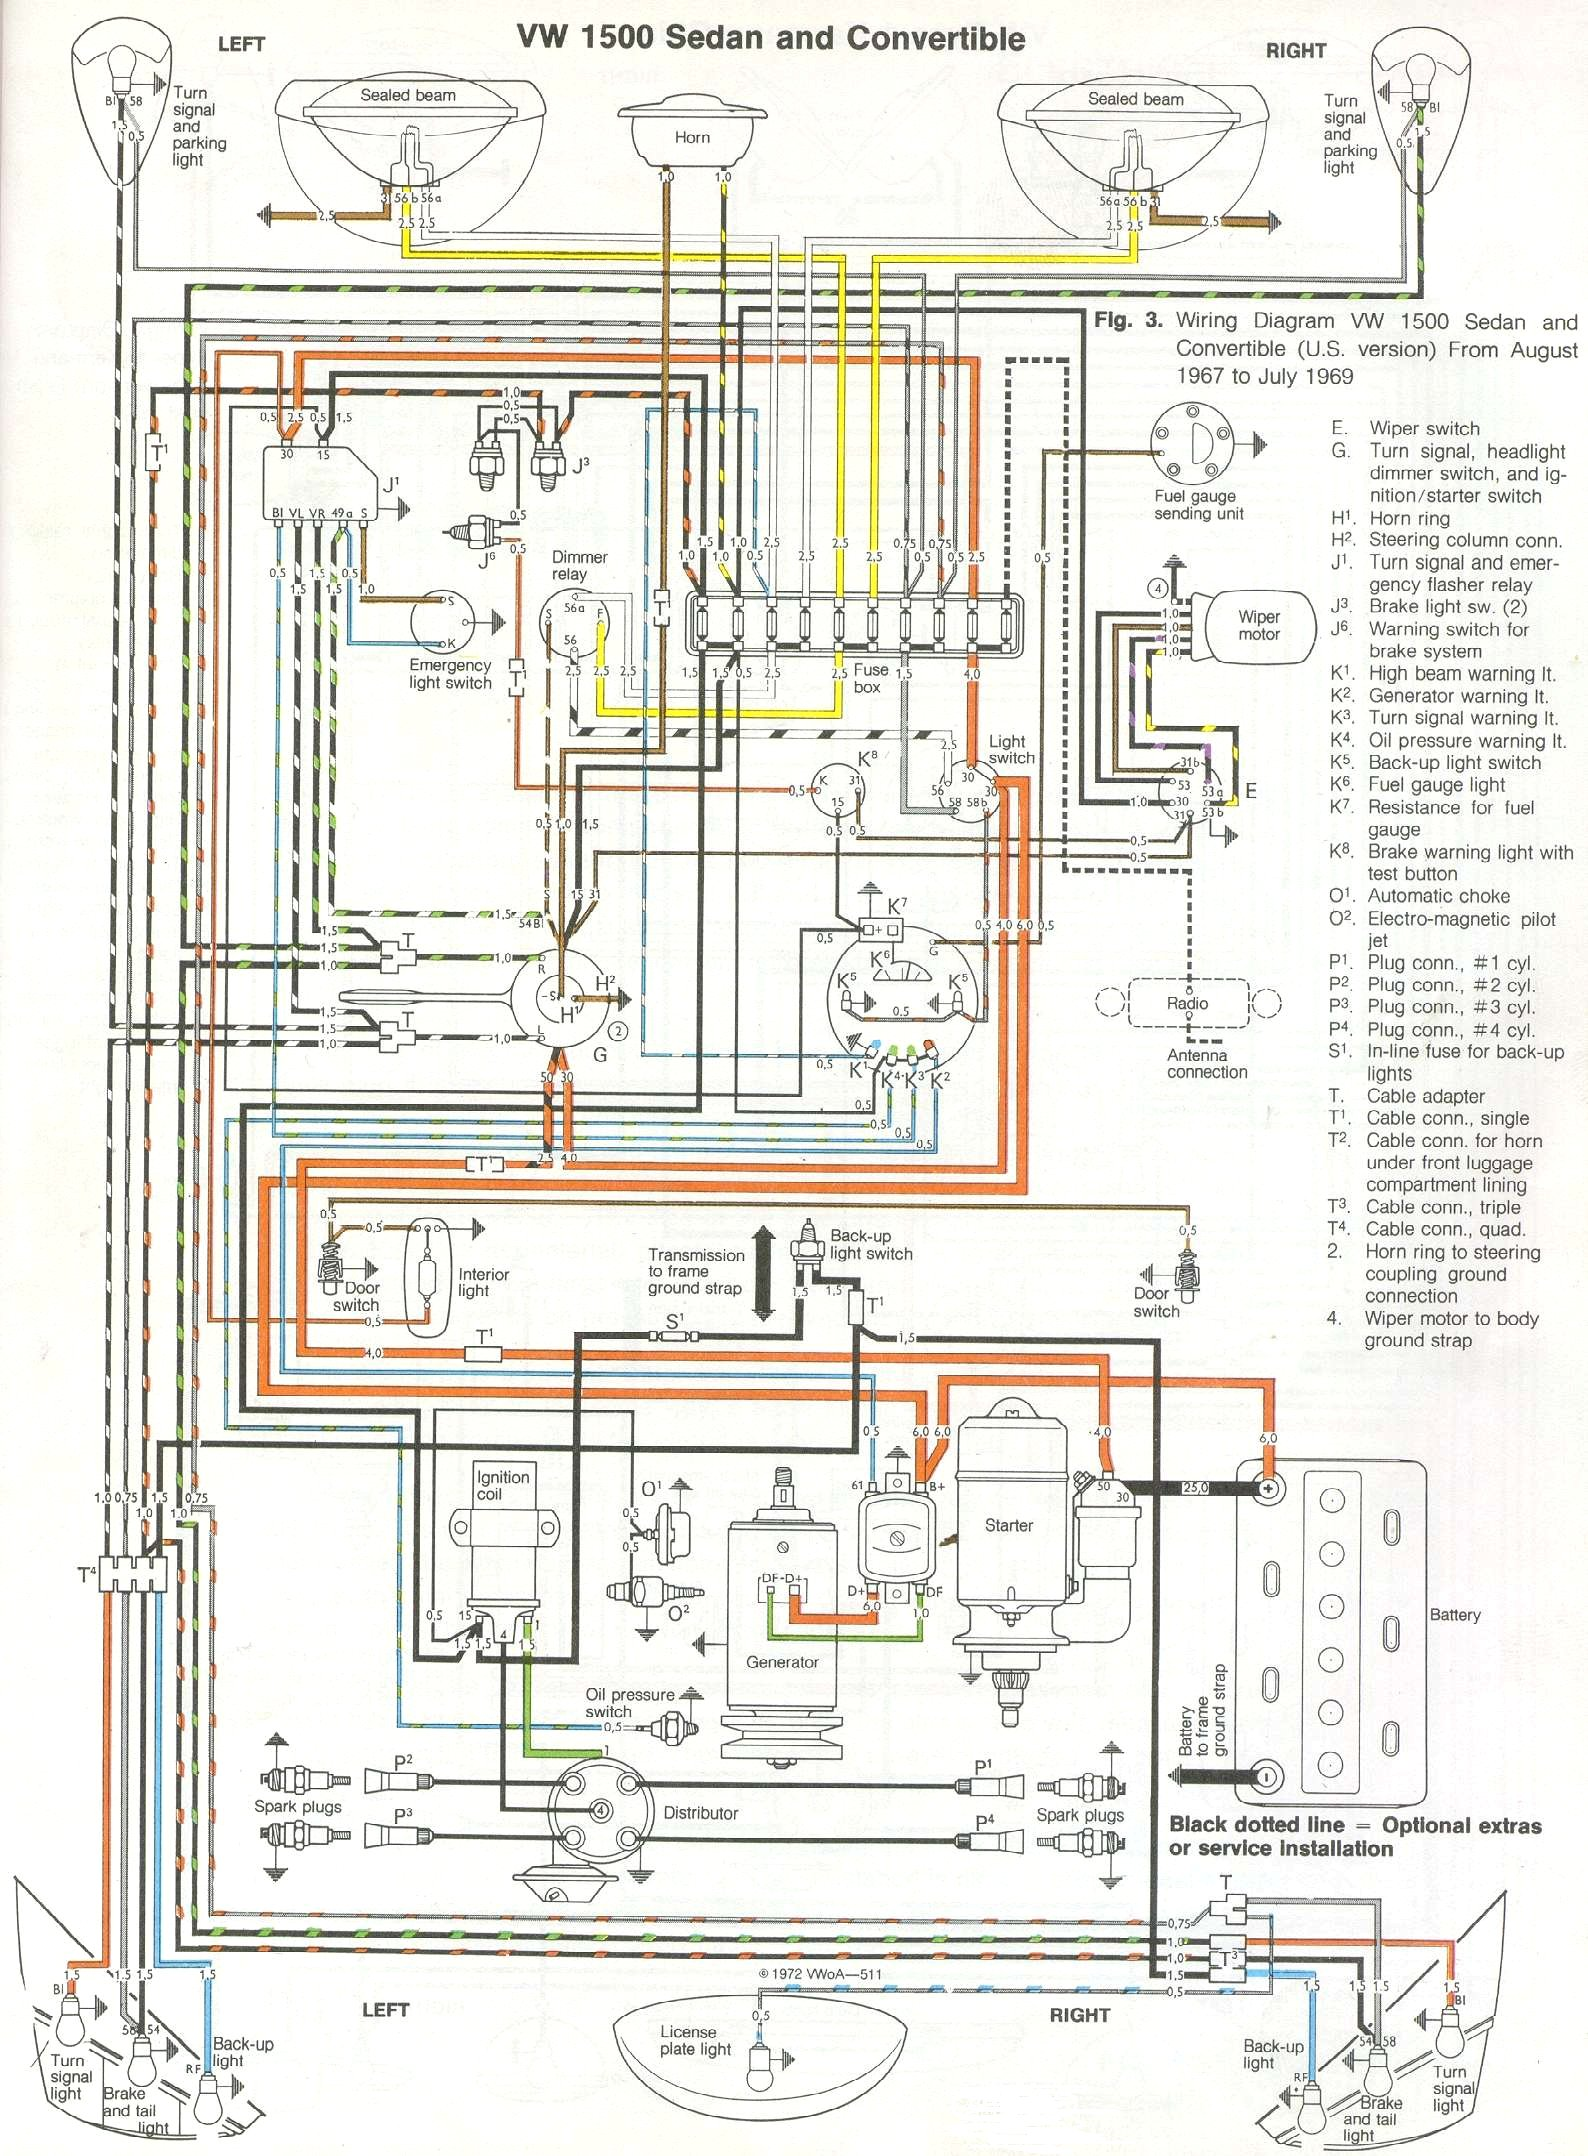 vw 1600 wiring diagram wiring diagrams schematics 1974 VW Thing Wiring-Diagram and 1969 71 beetle wiring diagram thegoldenbug com vw 1600 wiring diagram 3 vw 1600 wiring diagram at Volkswagen Thing Wiring Harness